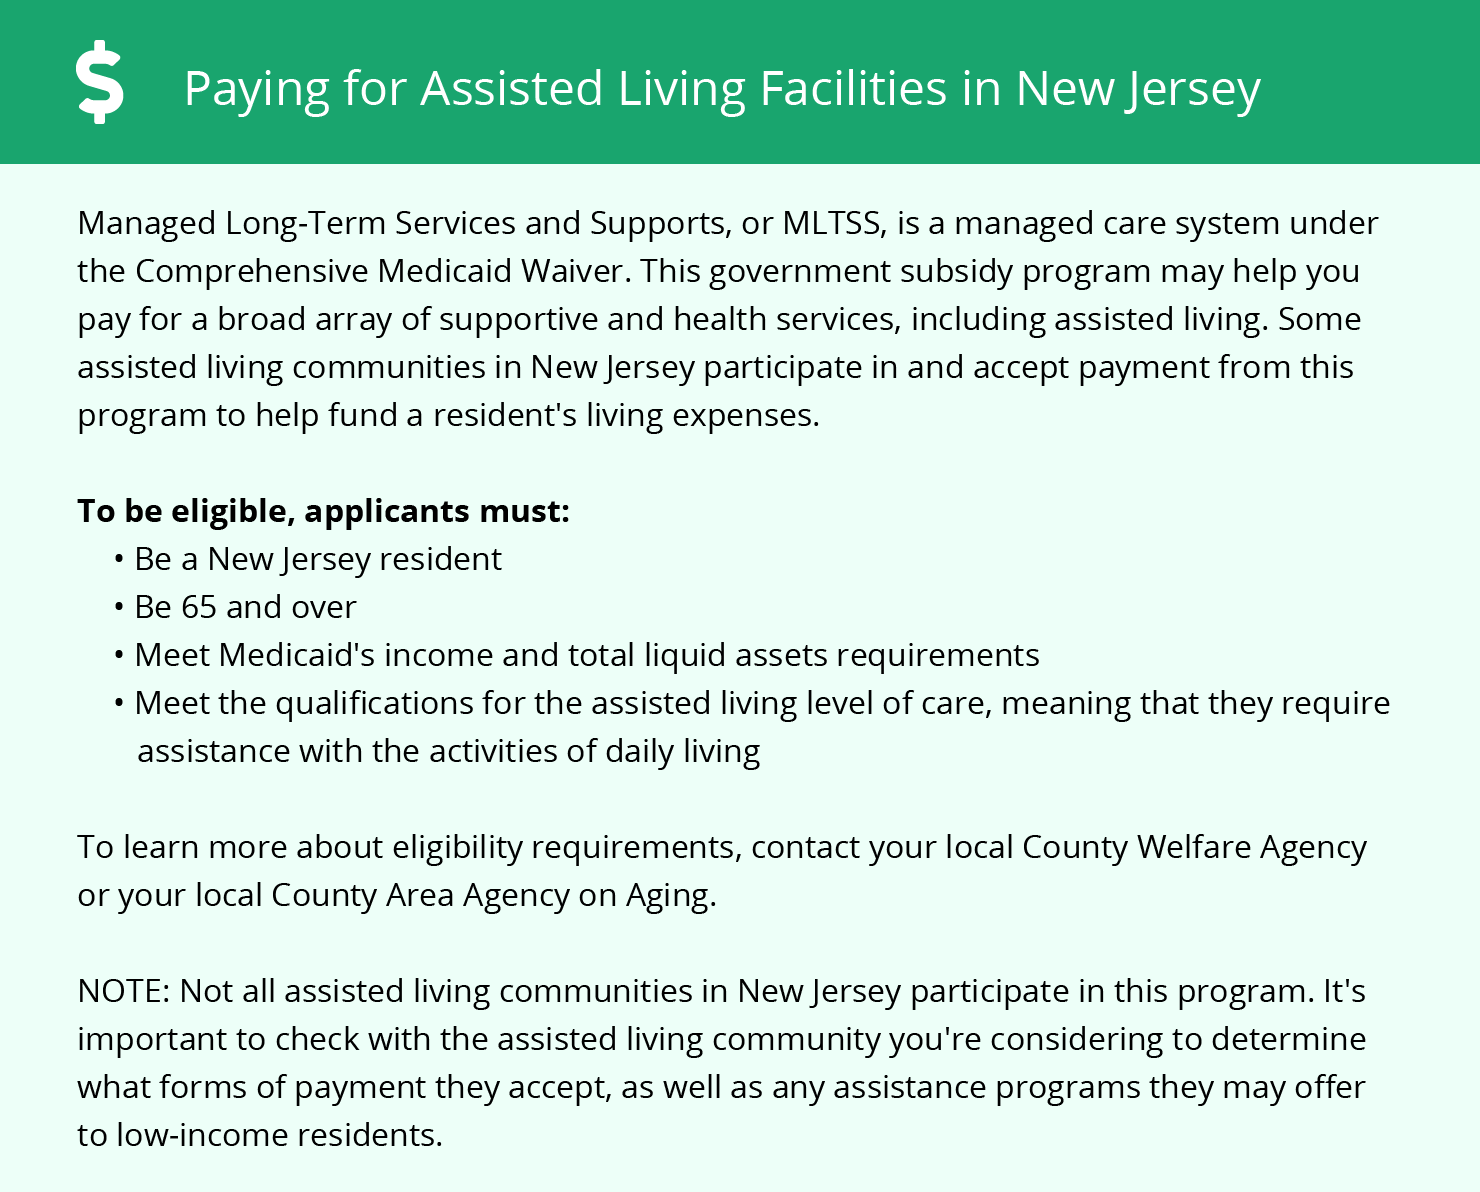 Financial Assistance for Assisted Living in New Jersey